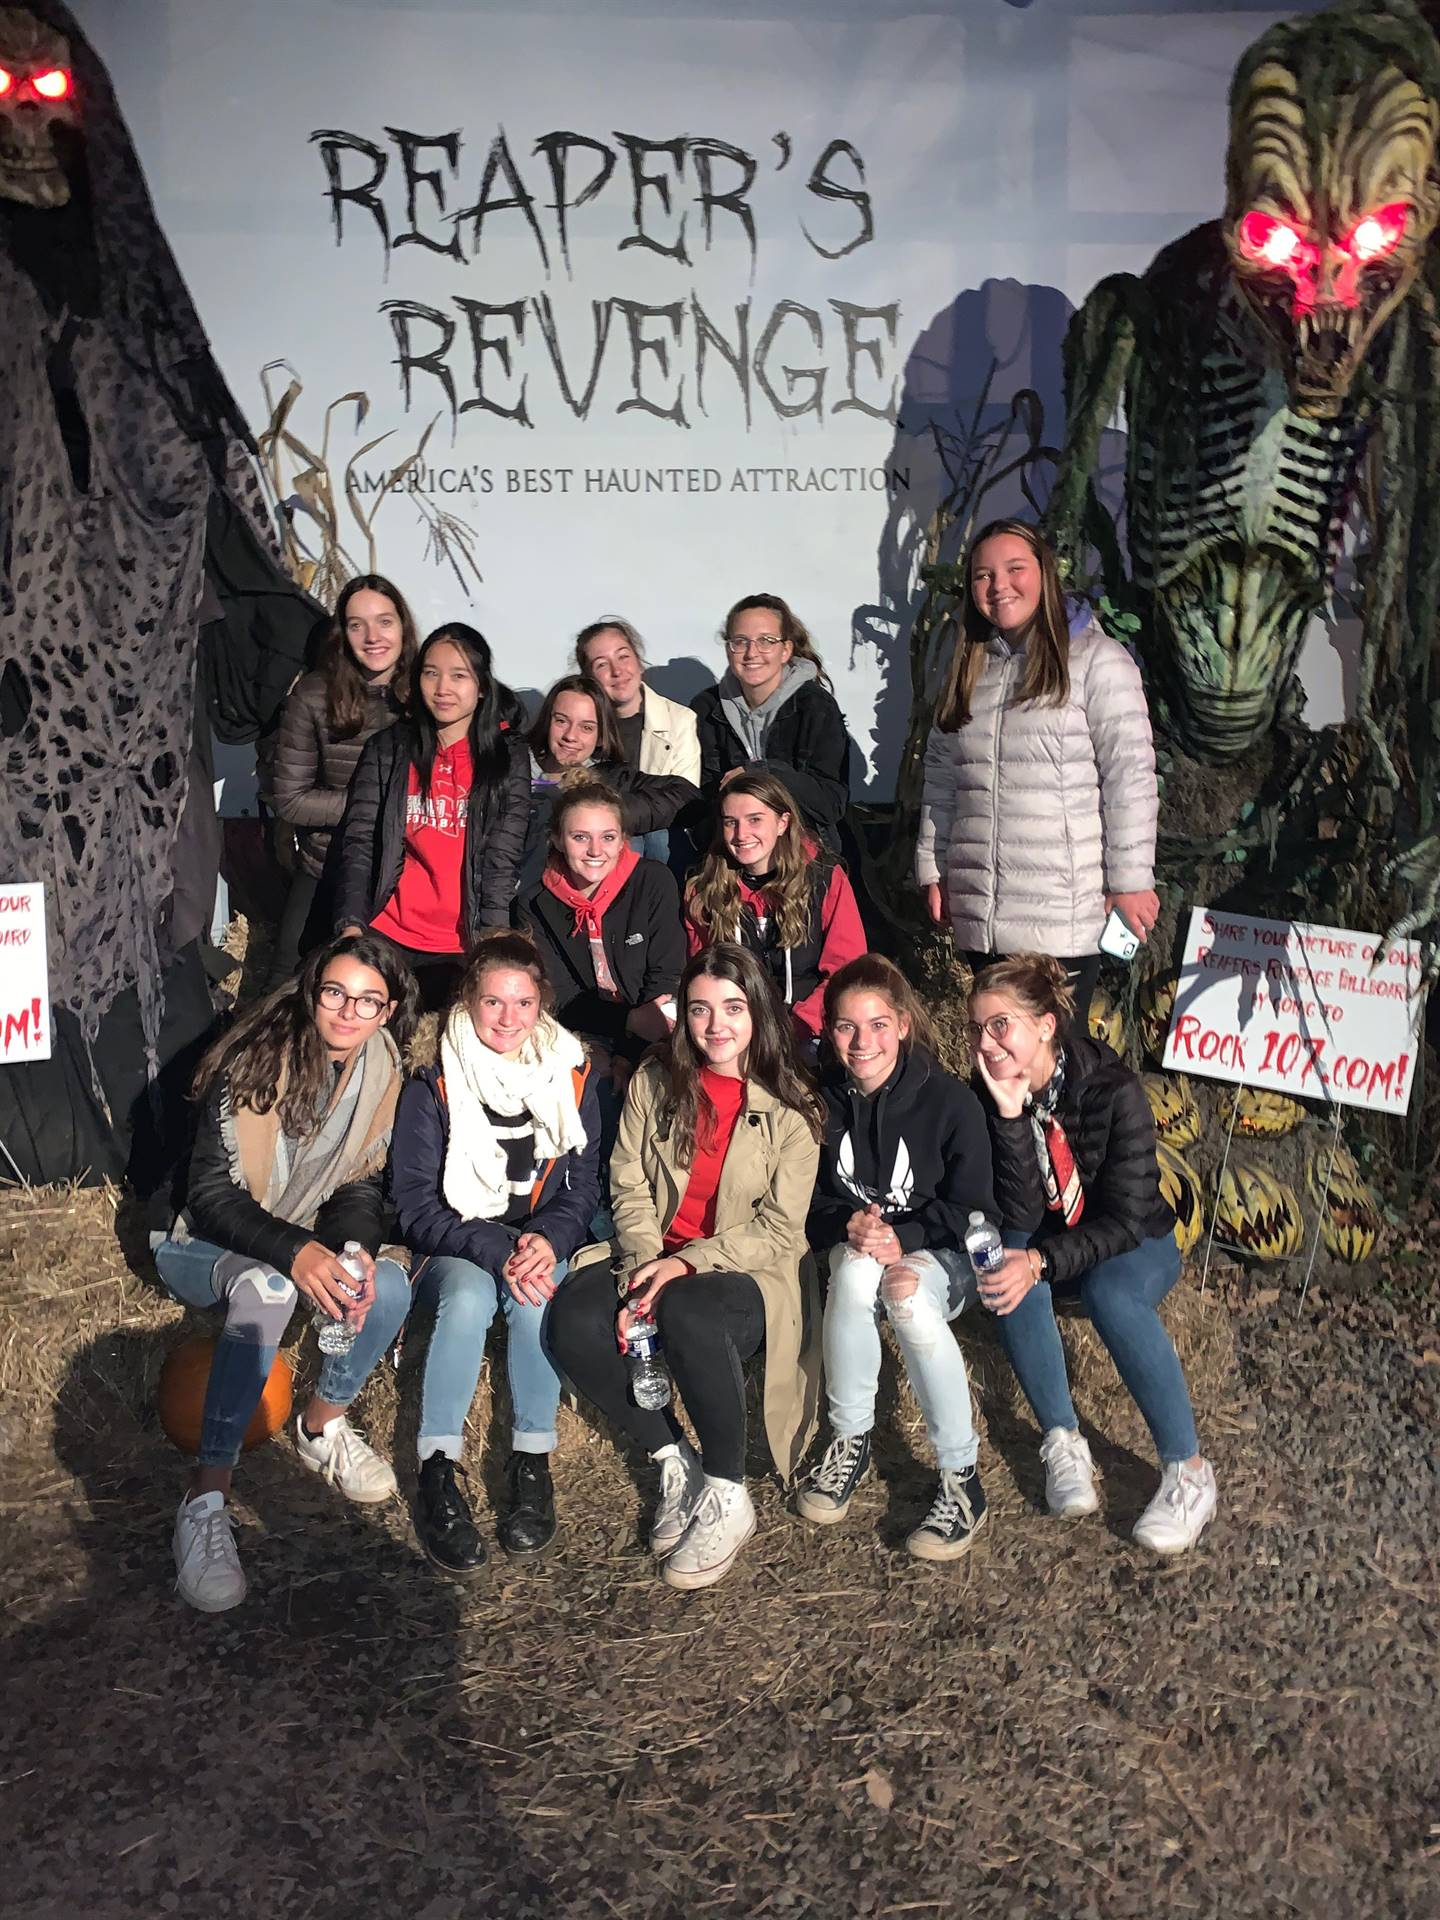 Chenango Valley French Exchange students at reapers revenge